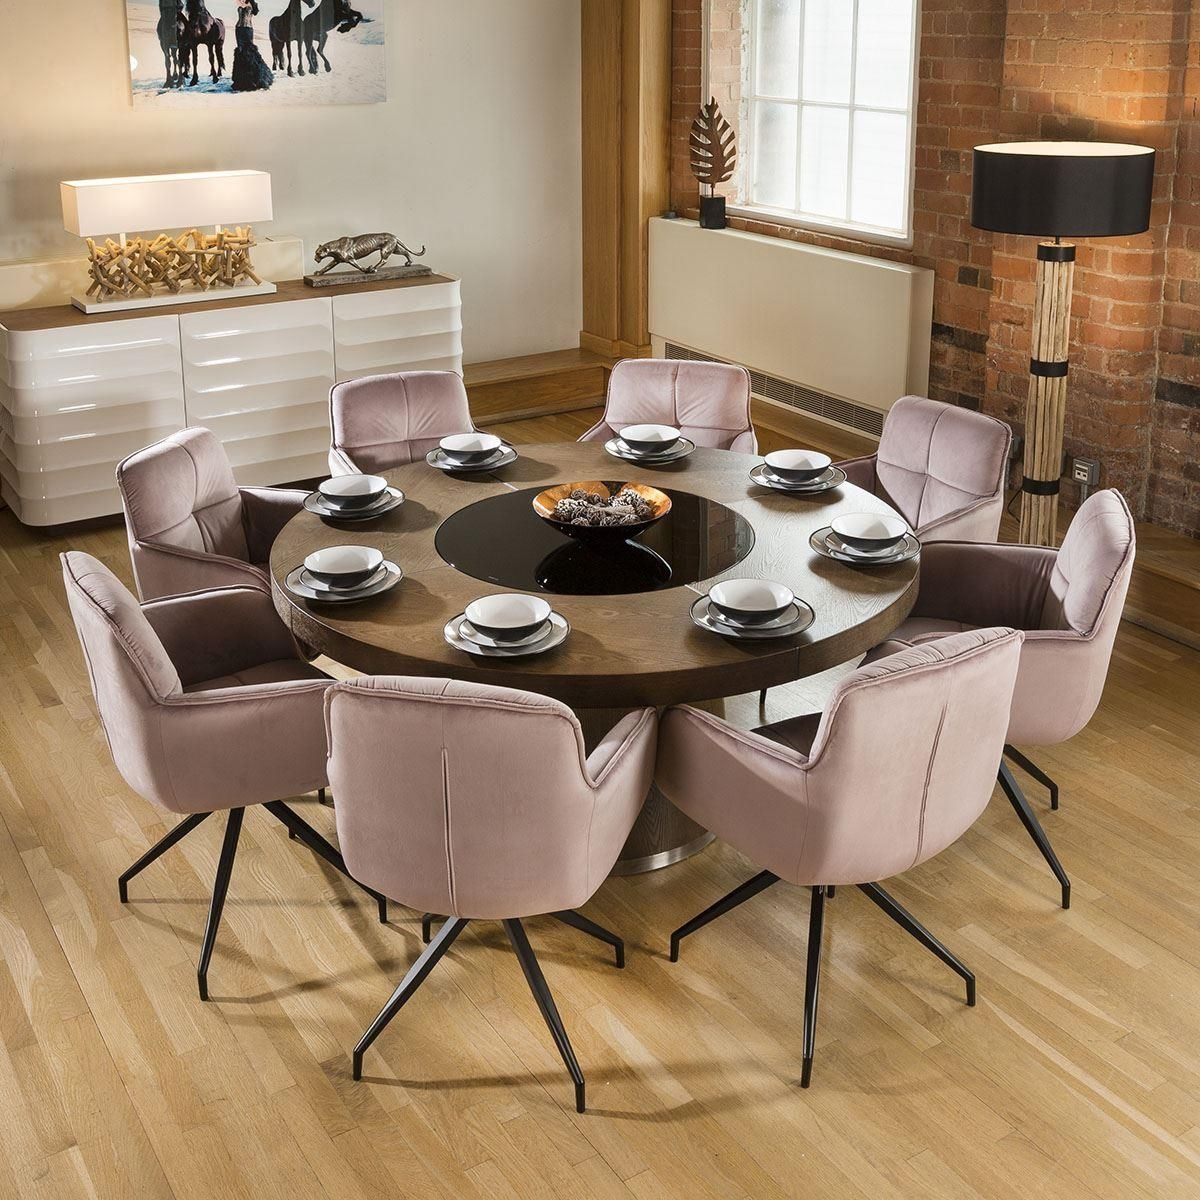 Luxury Large Round Walnut Dining Table Lazy Susan 8 Z Chairs 3104 Blk Dining Room Seating Walnut Dining Table Swivel Dining Chairs